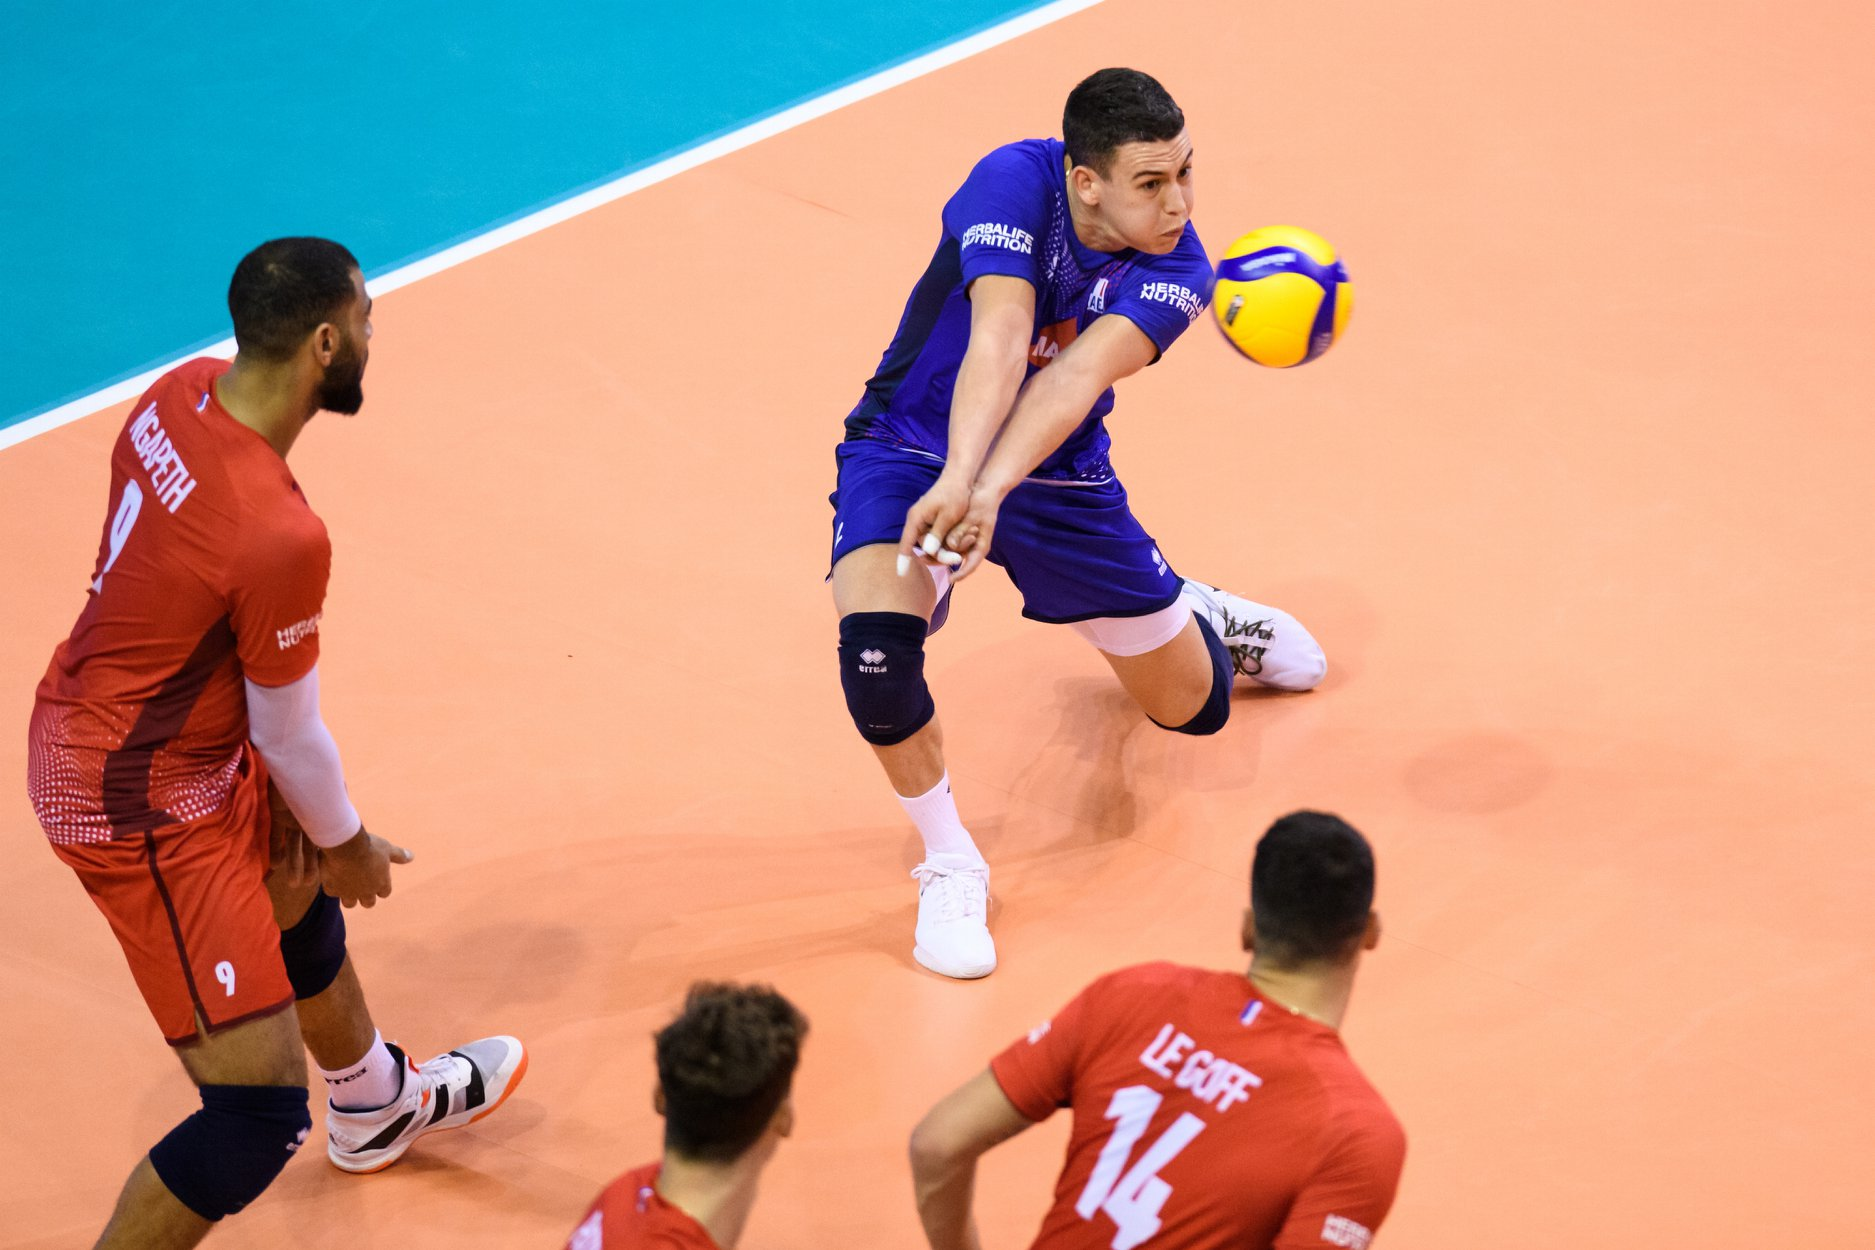 pourquoi-un-joueur-a-un-maillot-different-au-volley-le-libero-4